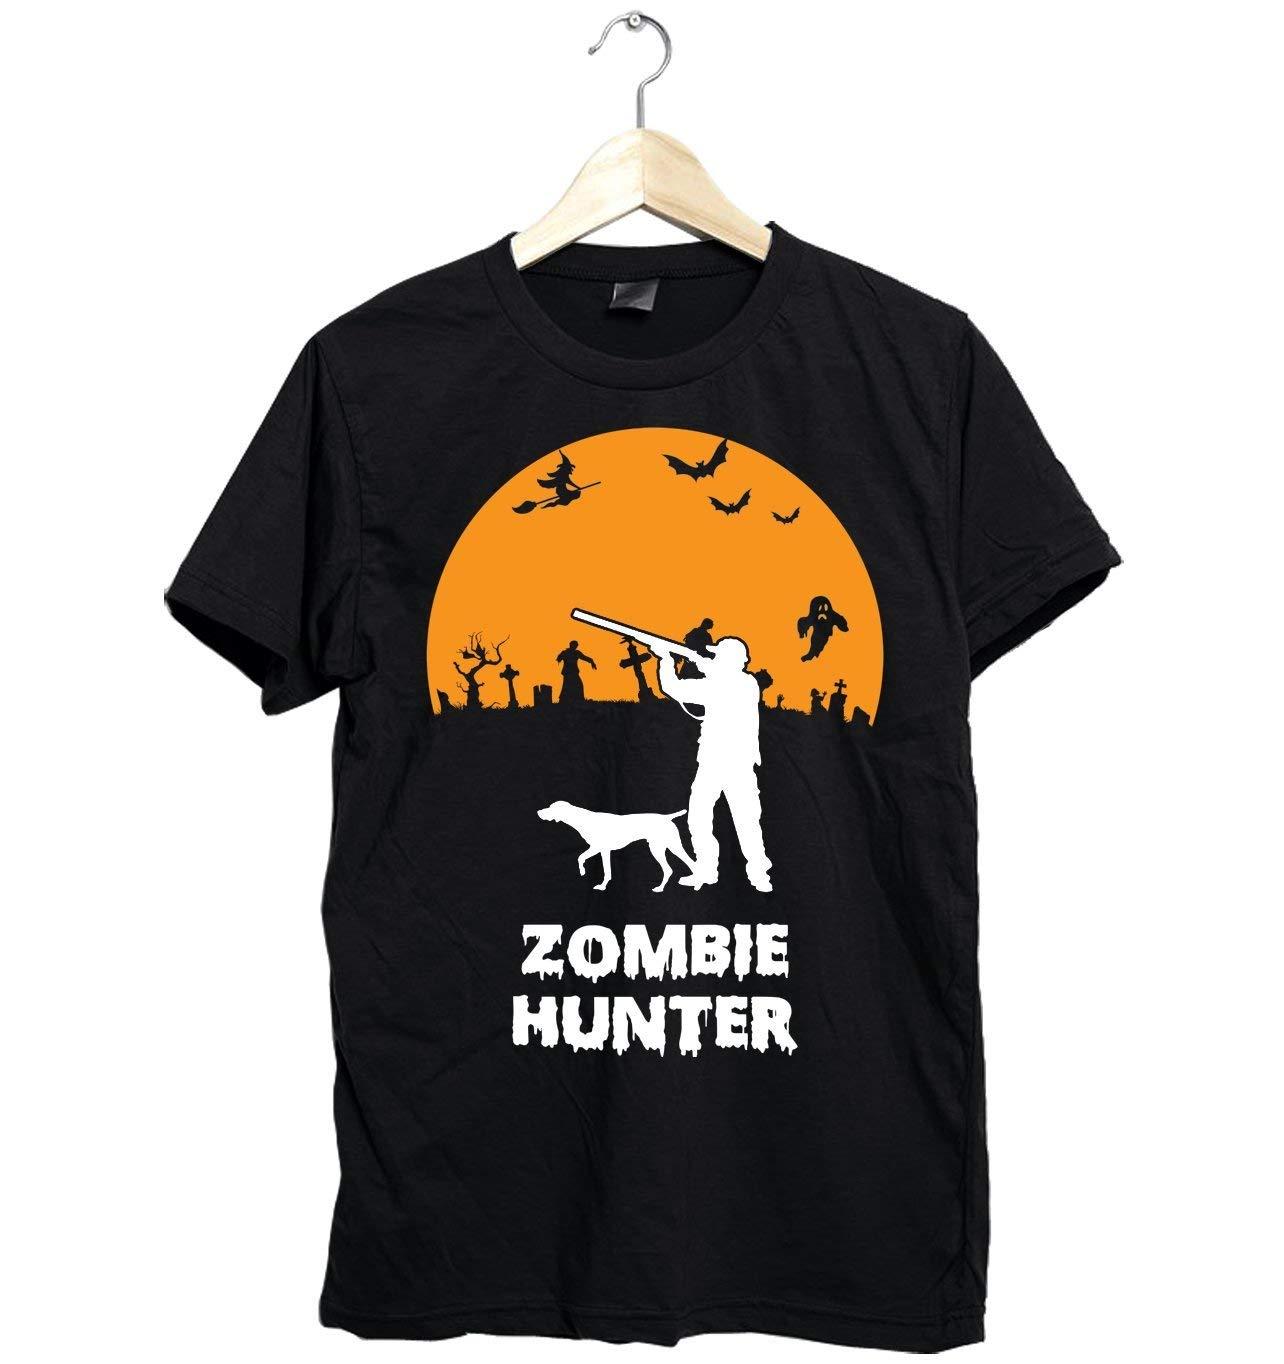 86f5b9db6 Amazing Hunting Shirt Funny For Halloween Zombie Hunter Gifts Fast Shipping  Size Up To 6XL